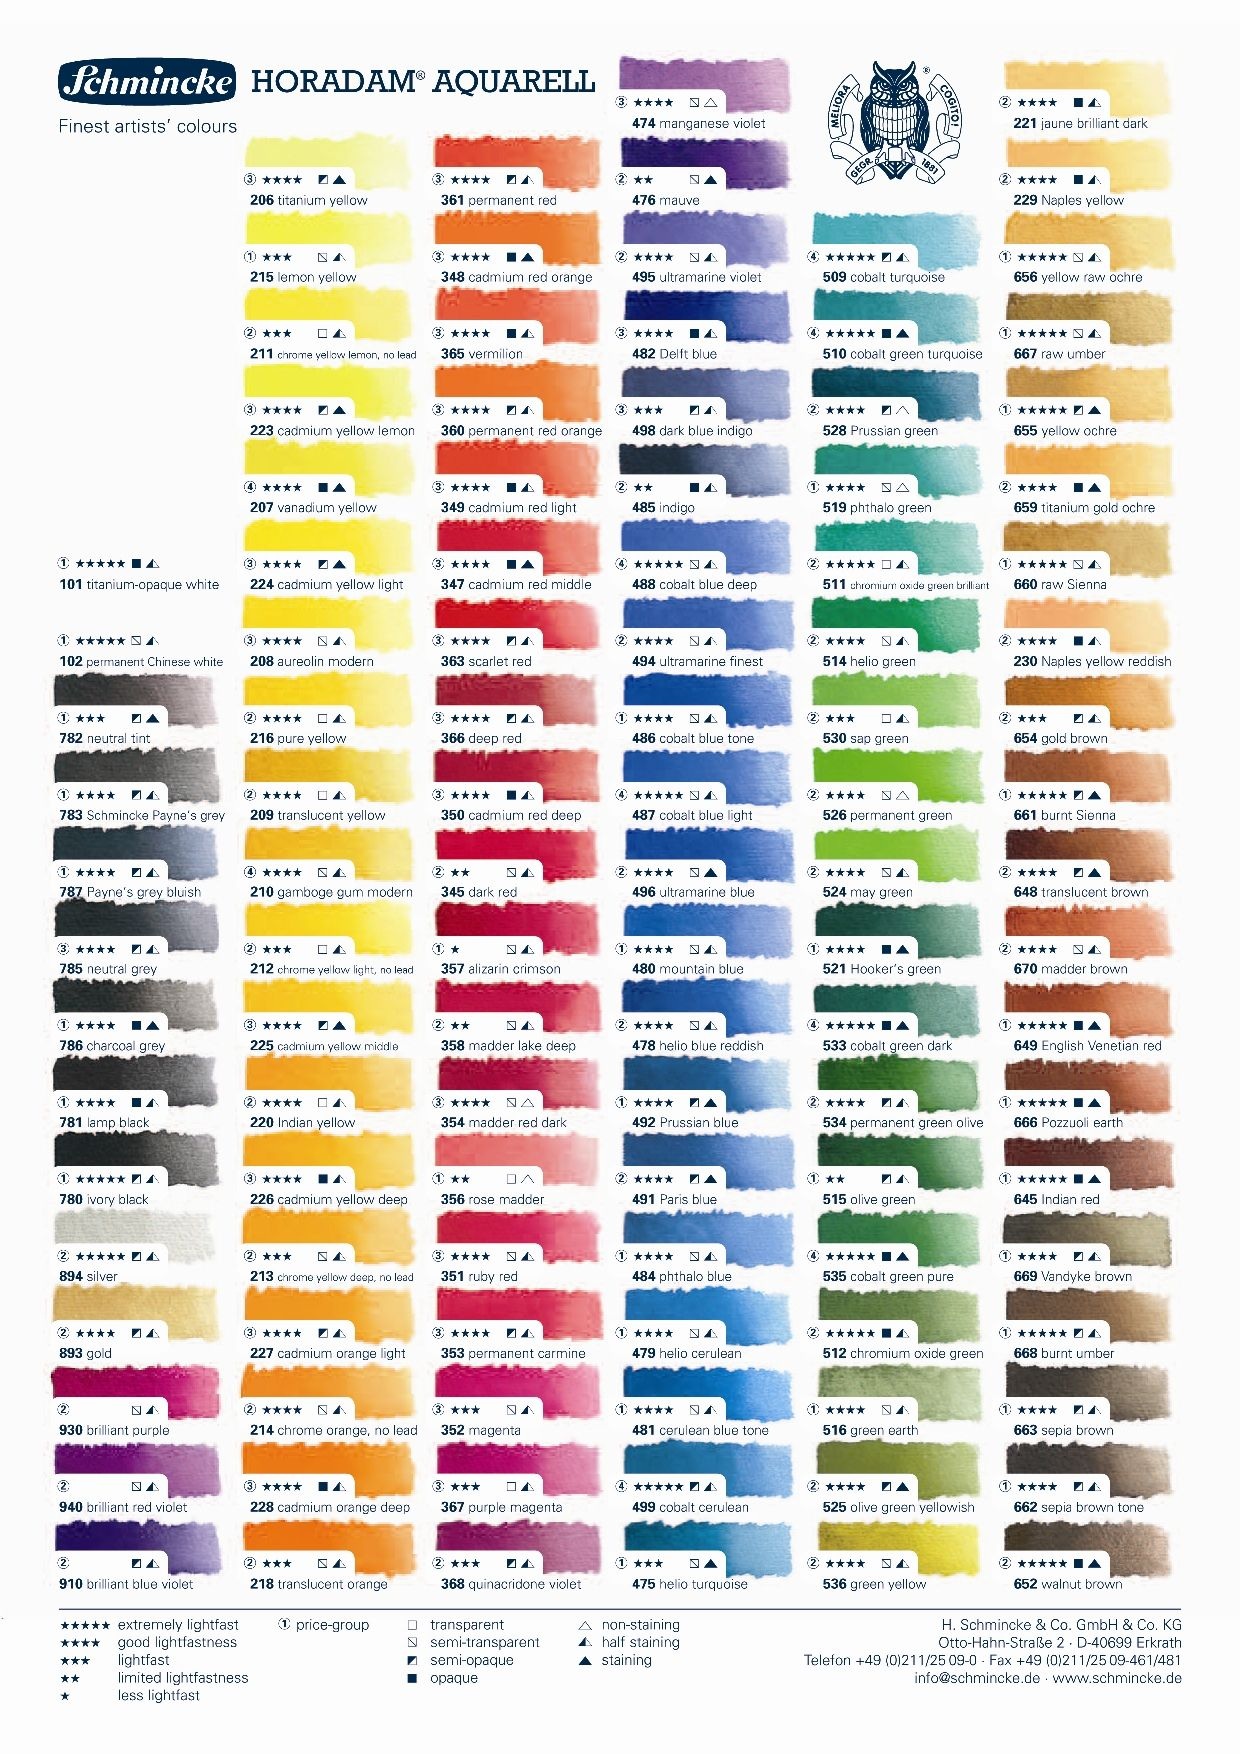 Horadam Auqarell Colour Chart Jpg 1240 1754 Paint Color Chart